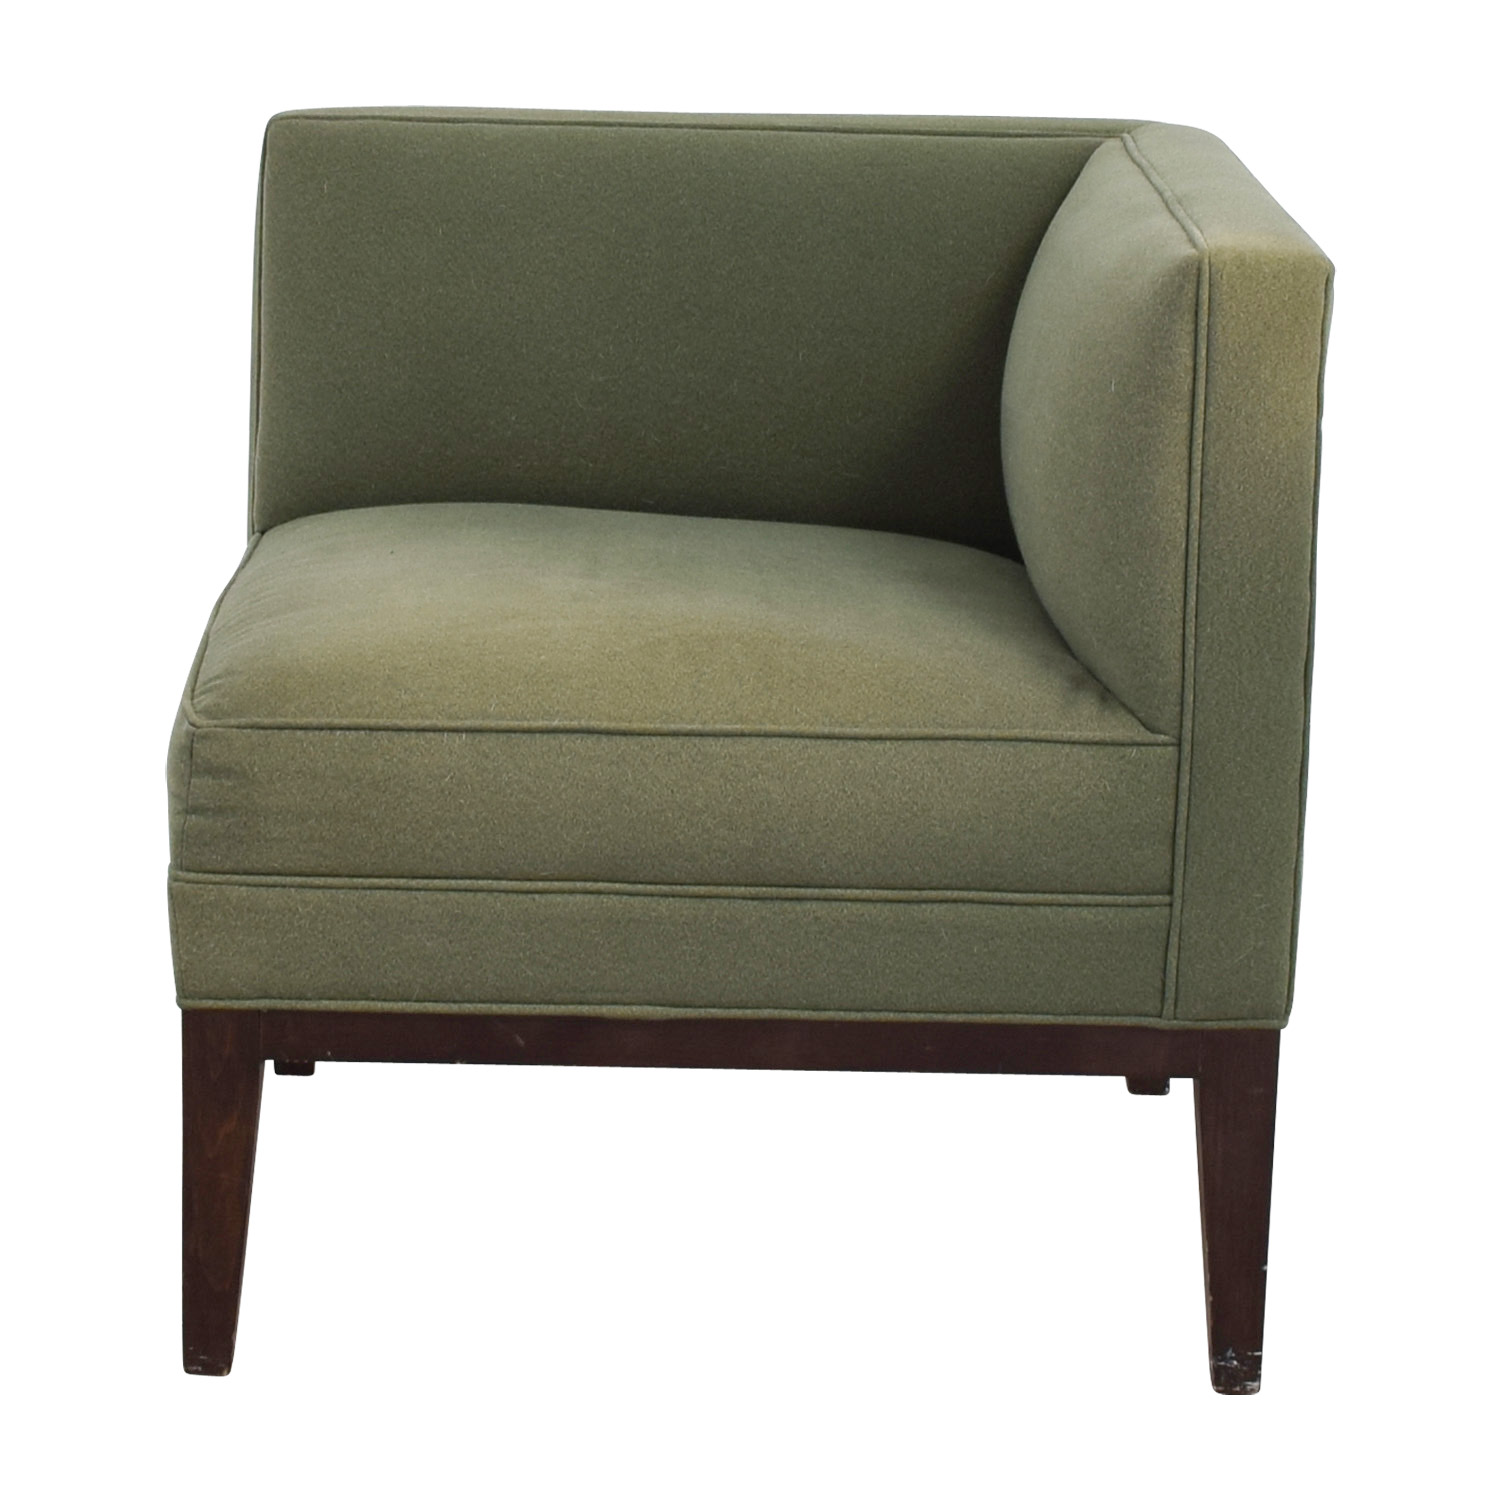 Mitchell Gold + Bob Williams Mitchell Gold + Bob Williams Sage Green Corner Accent Chair price